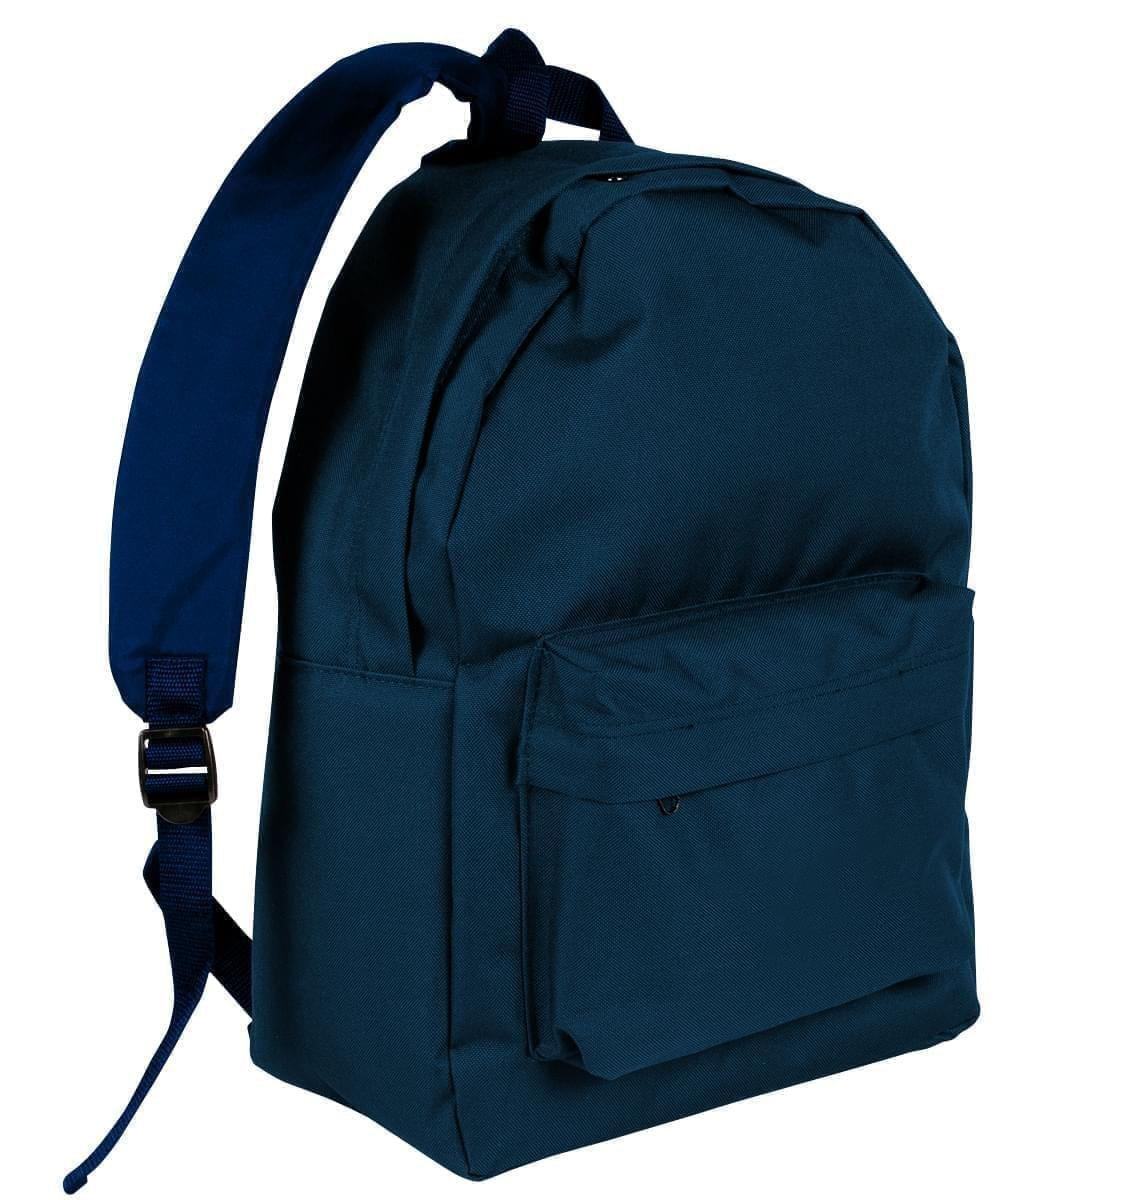 USA Made Nylon Poly Backpack Knapsacks, Navy-Navy, 8960-AWZ